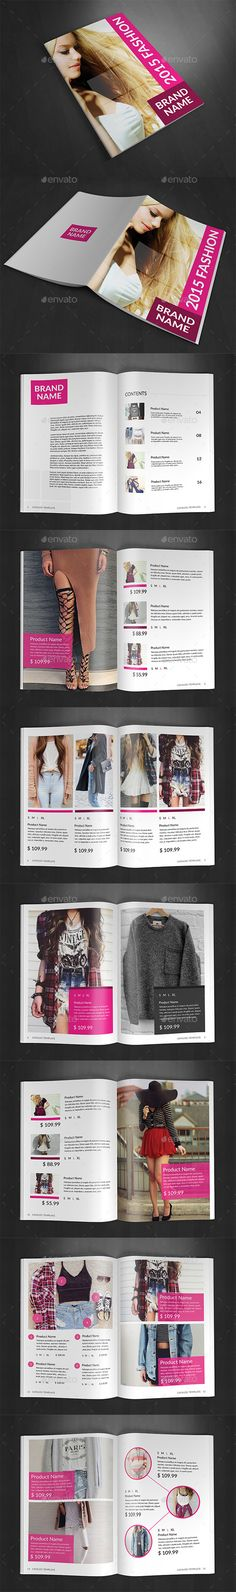 Multipurpose Catalogs \/ Brochure Template, Brochures and Http - fashion design brochure template